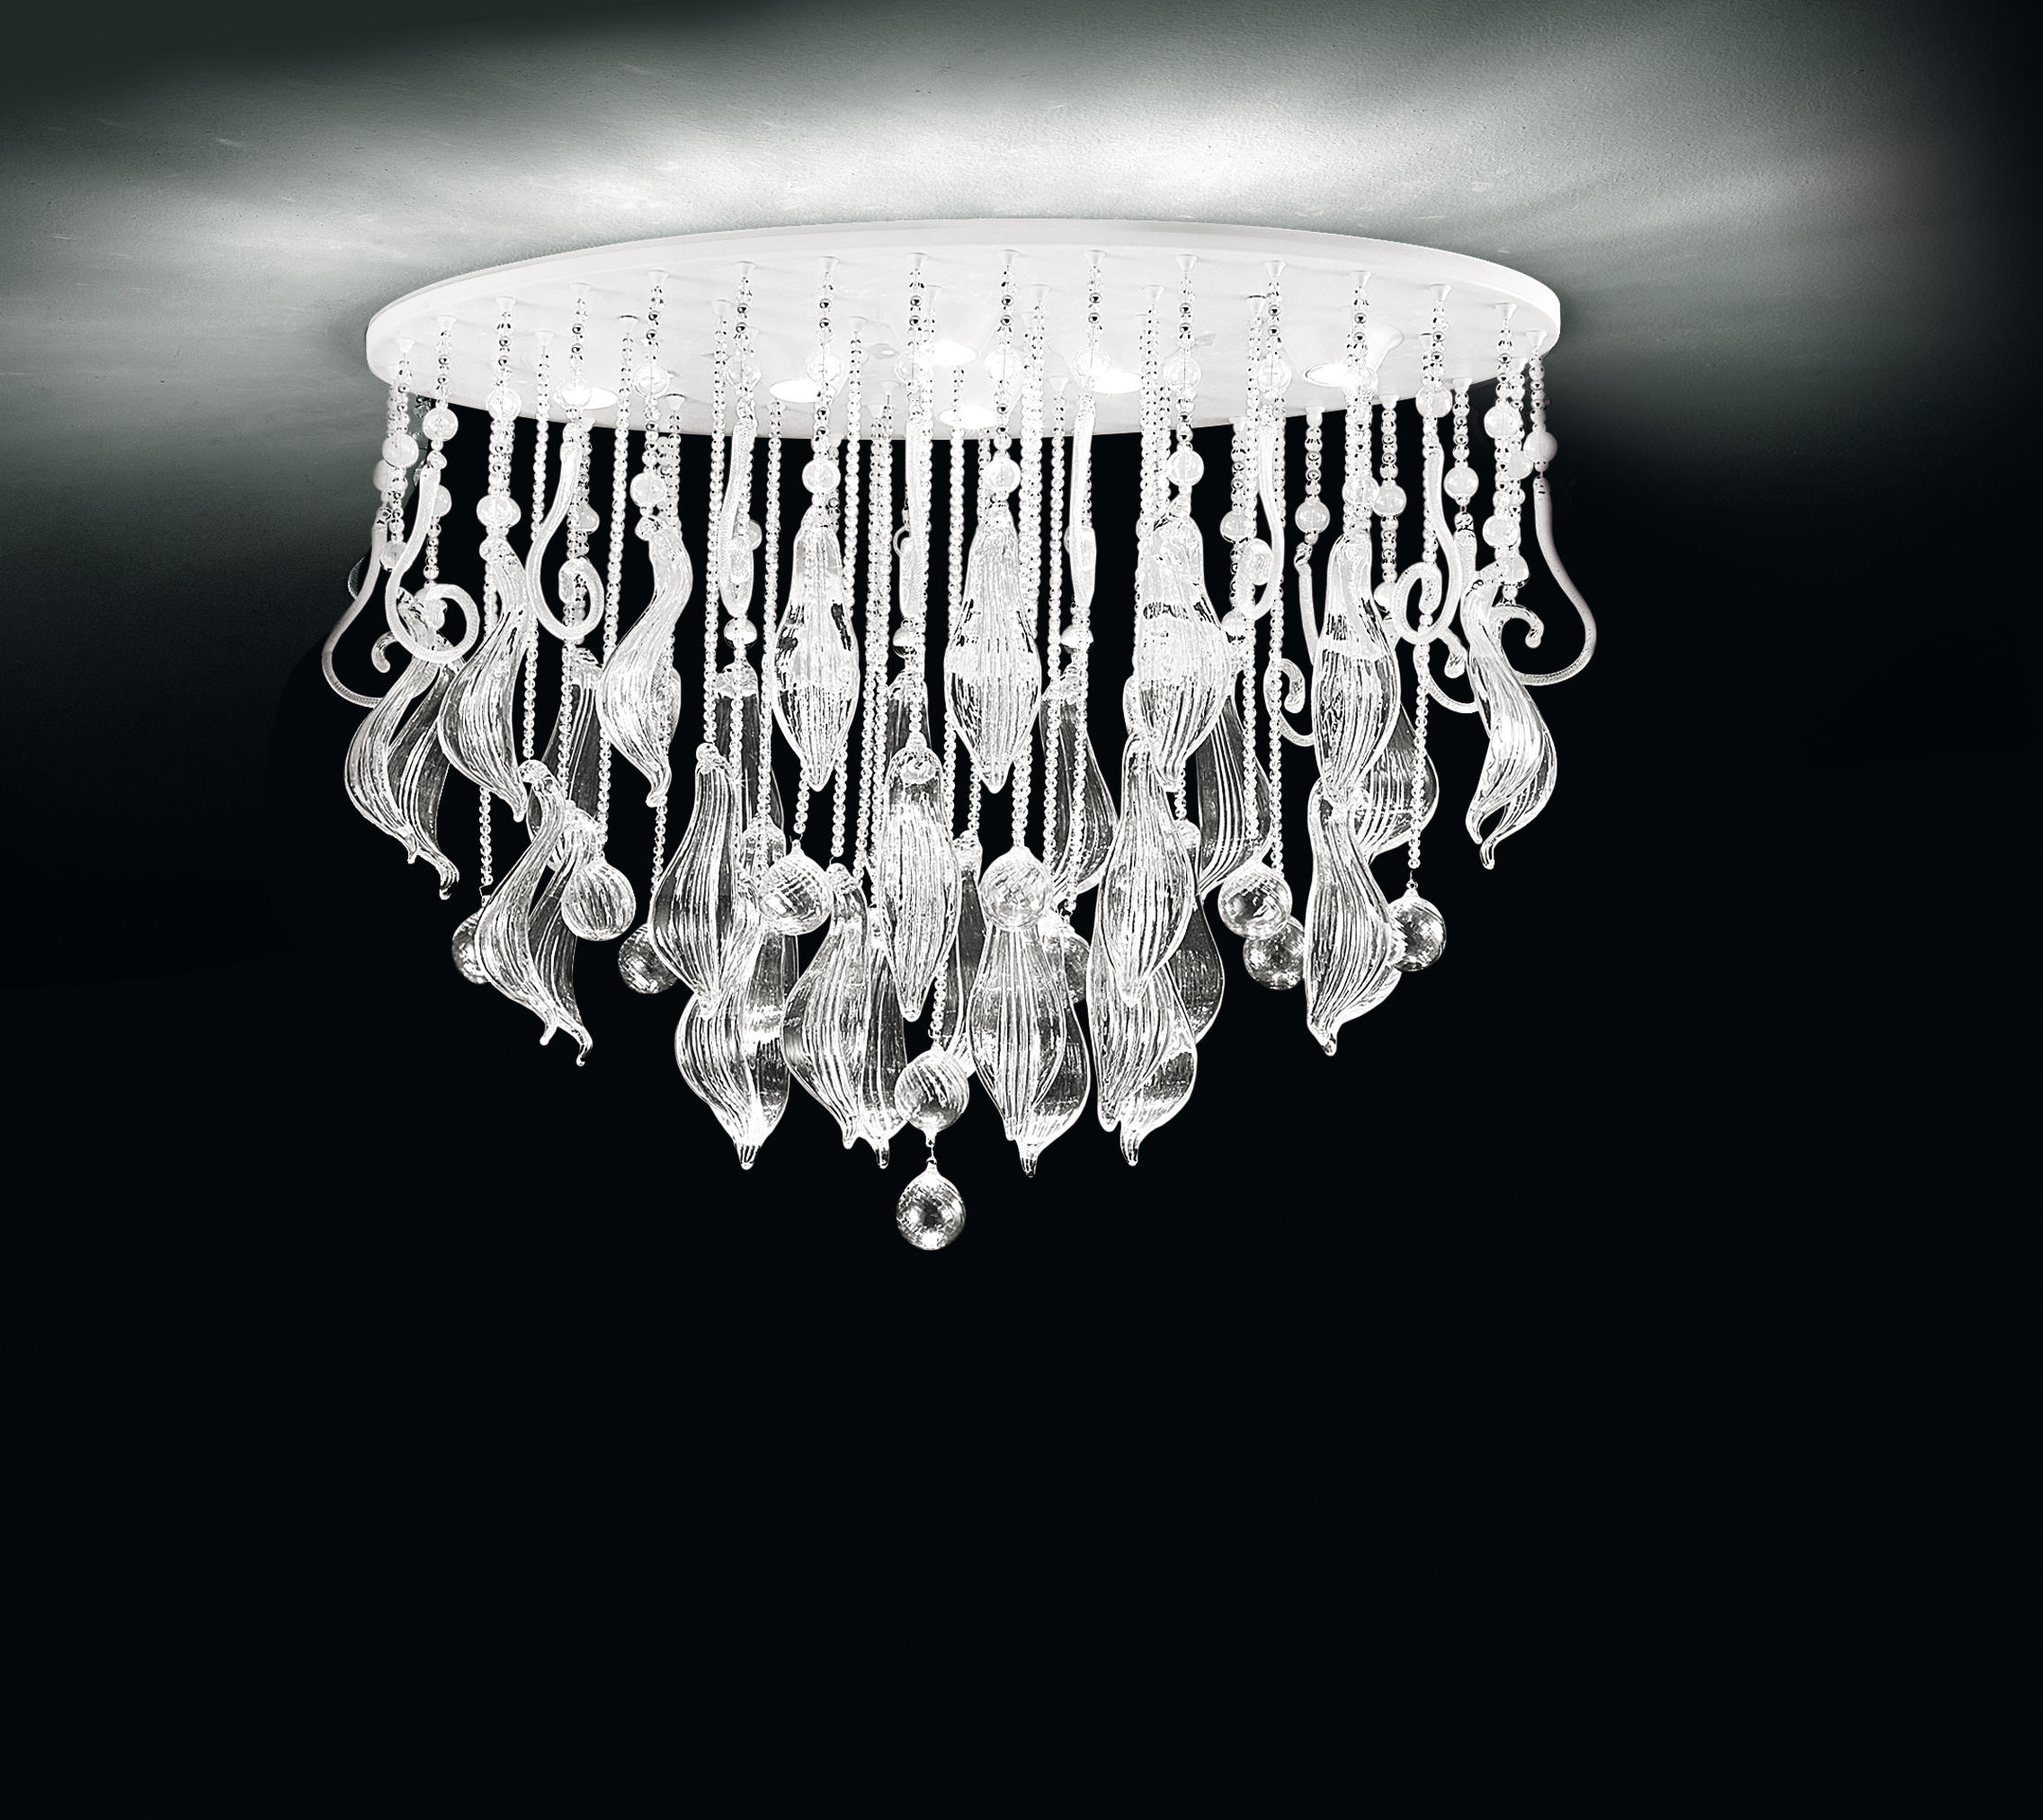 Elysee l12 general lighting from leucos usa architonic elysee l12 by leucos usa arubaitofo Image collections